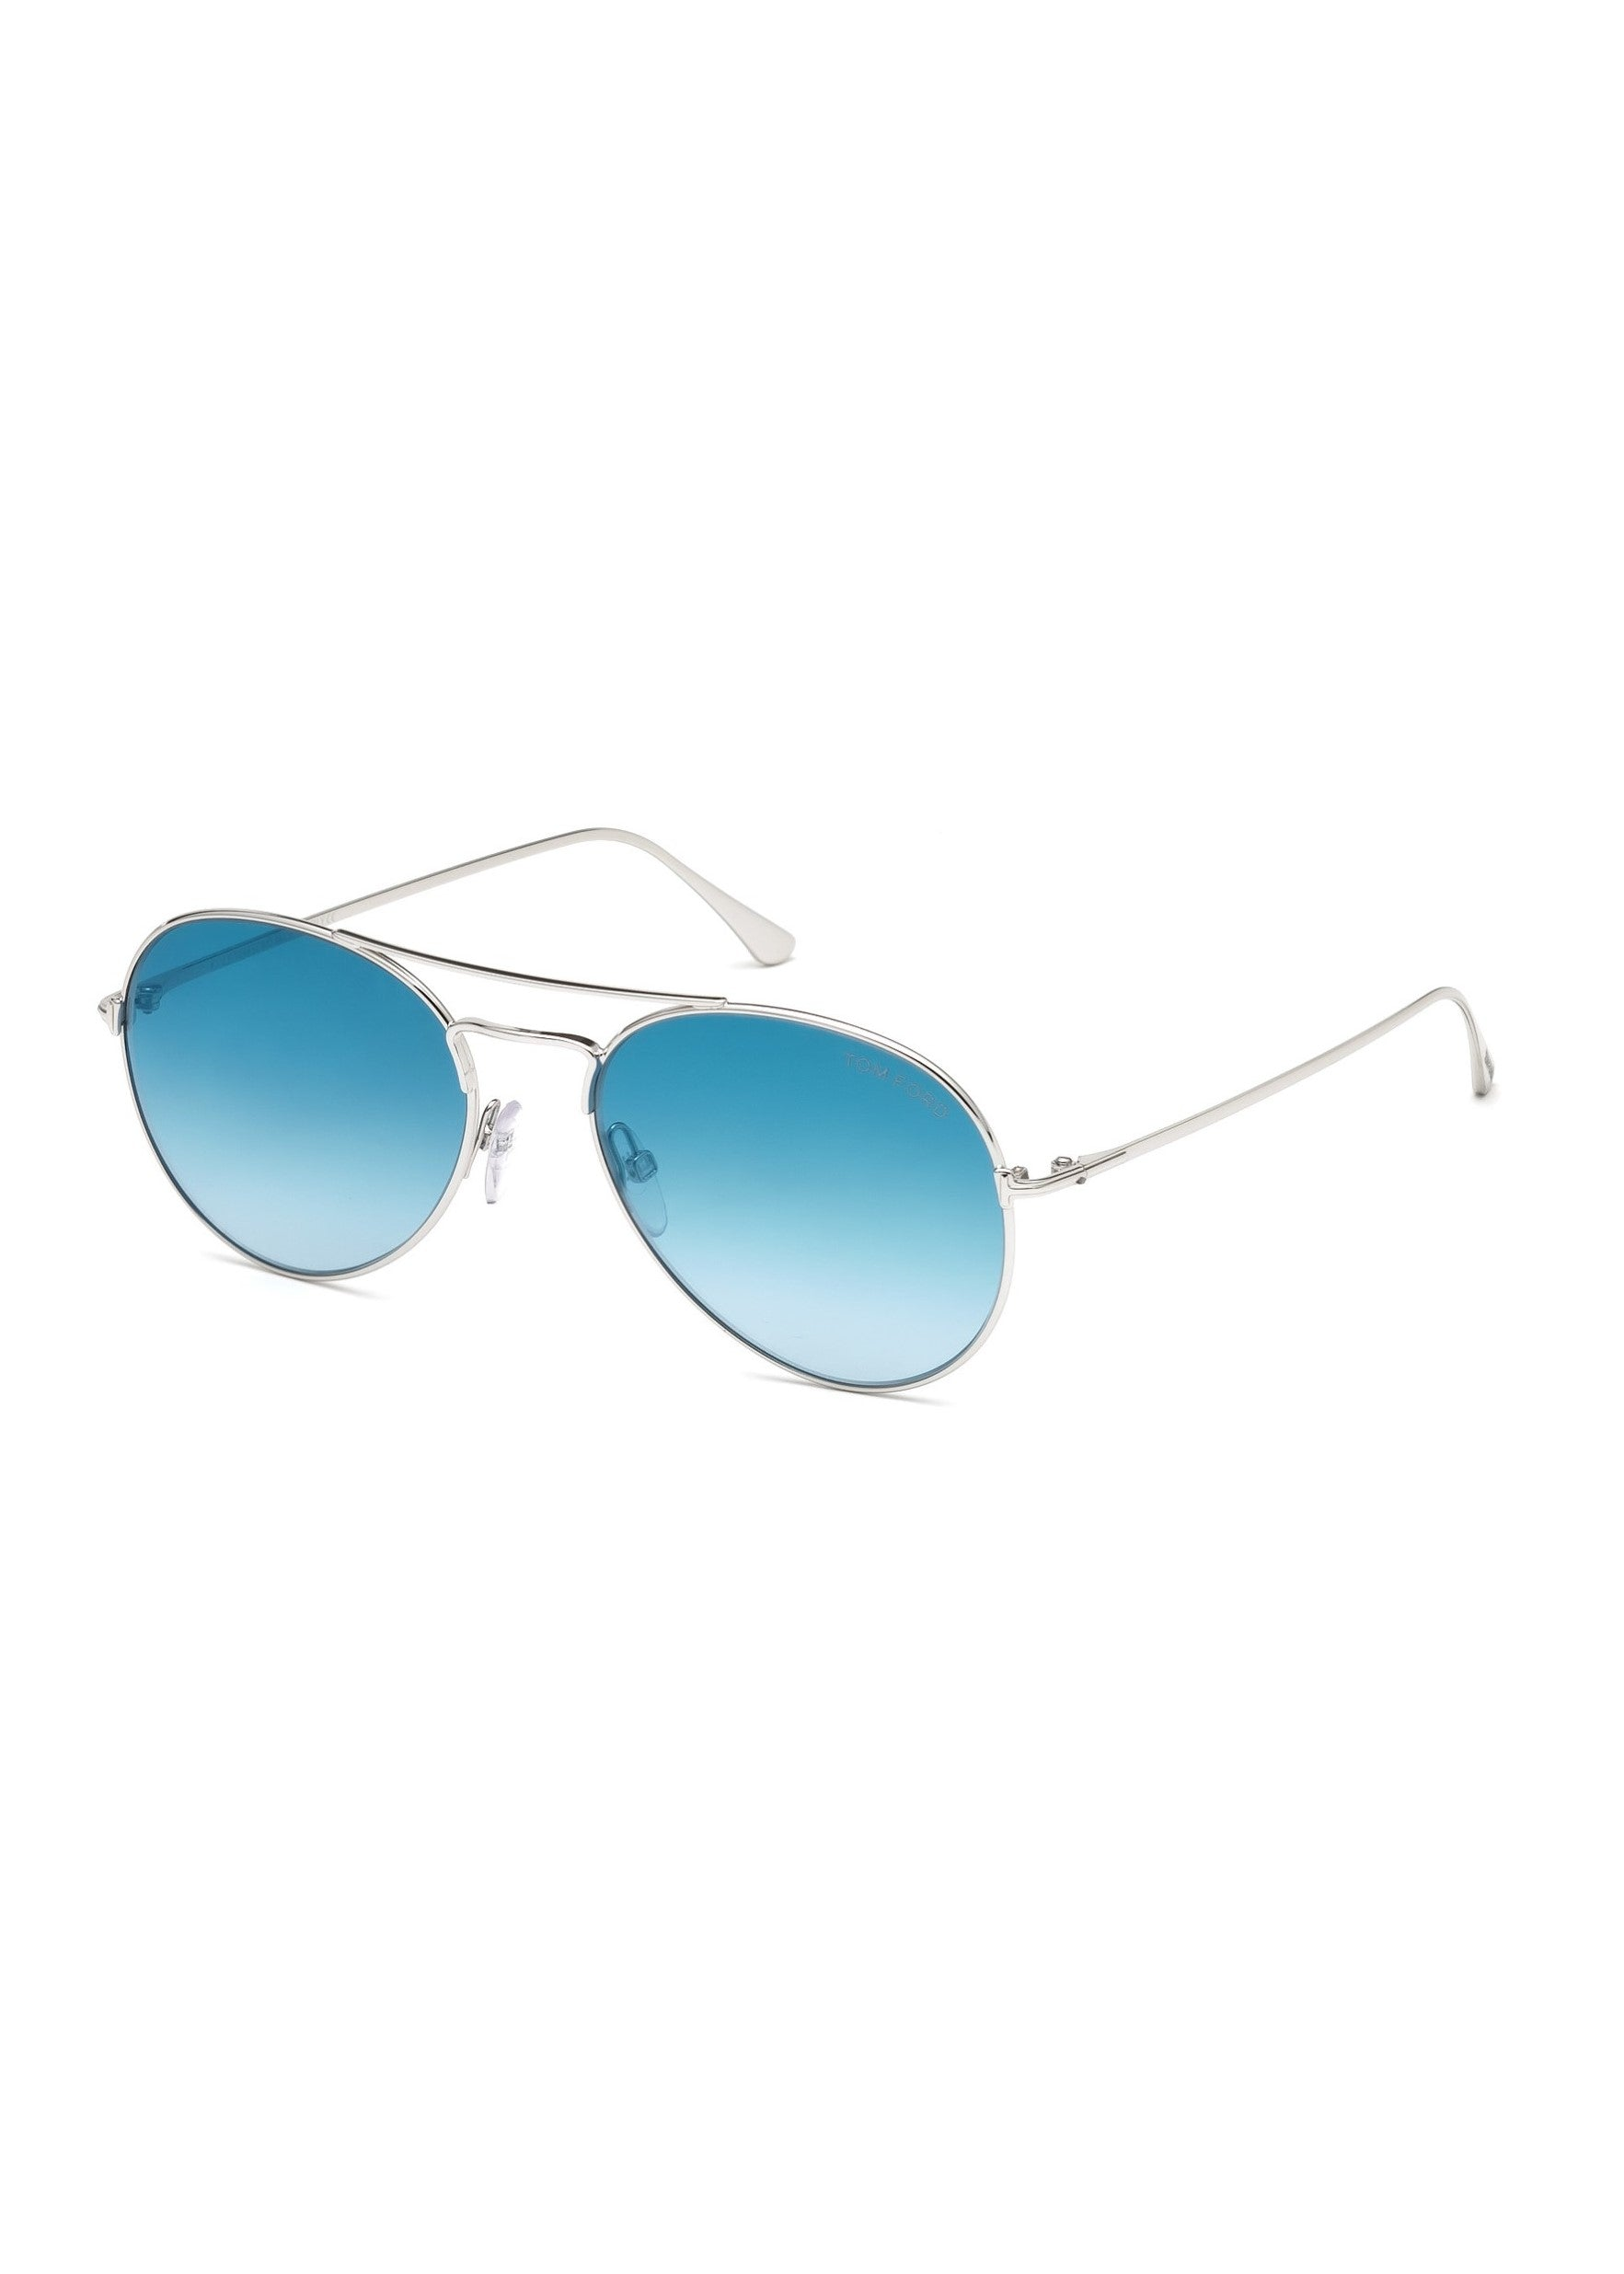 Tom Ford ace round aviators blue